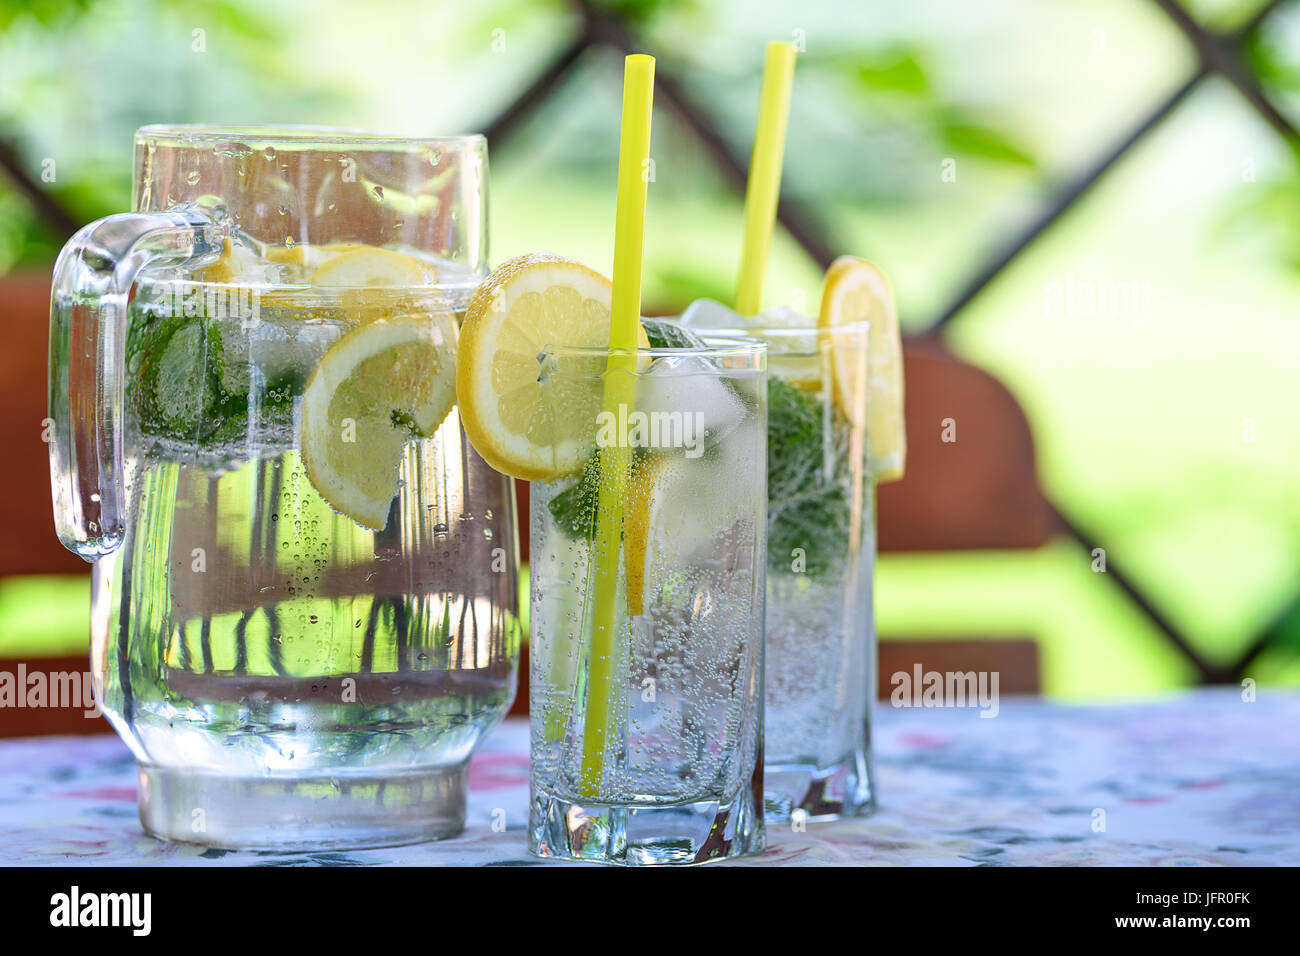 Cool and refreshing drink with lemon, mint and ice in the garden on a hot day. - Stock Image